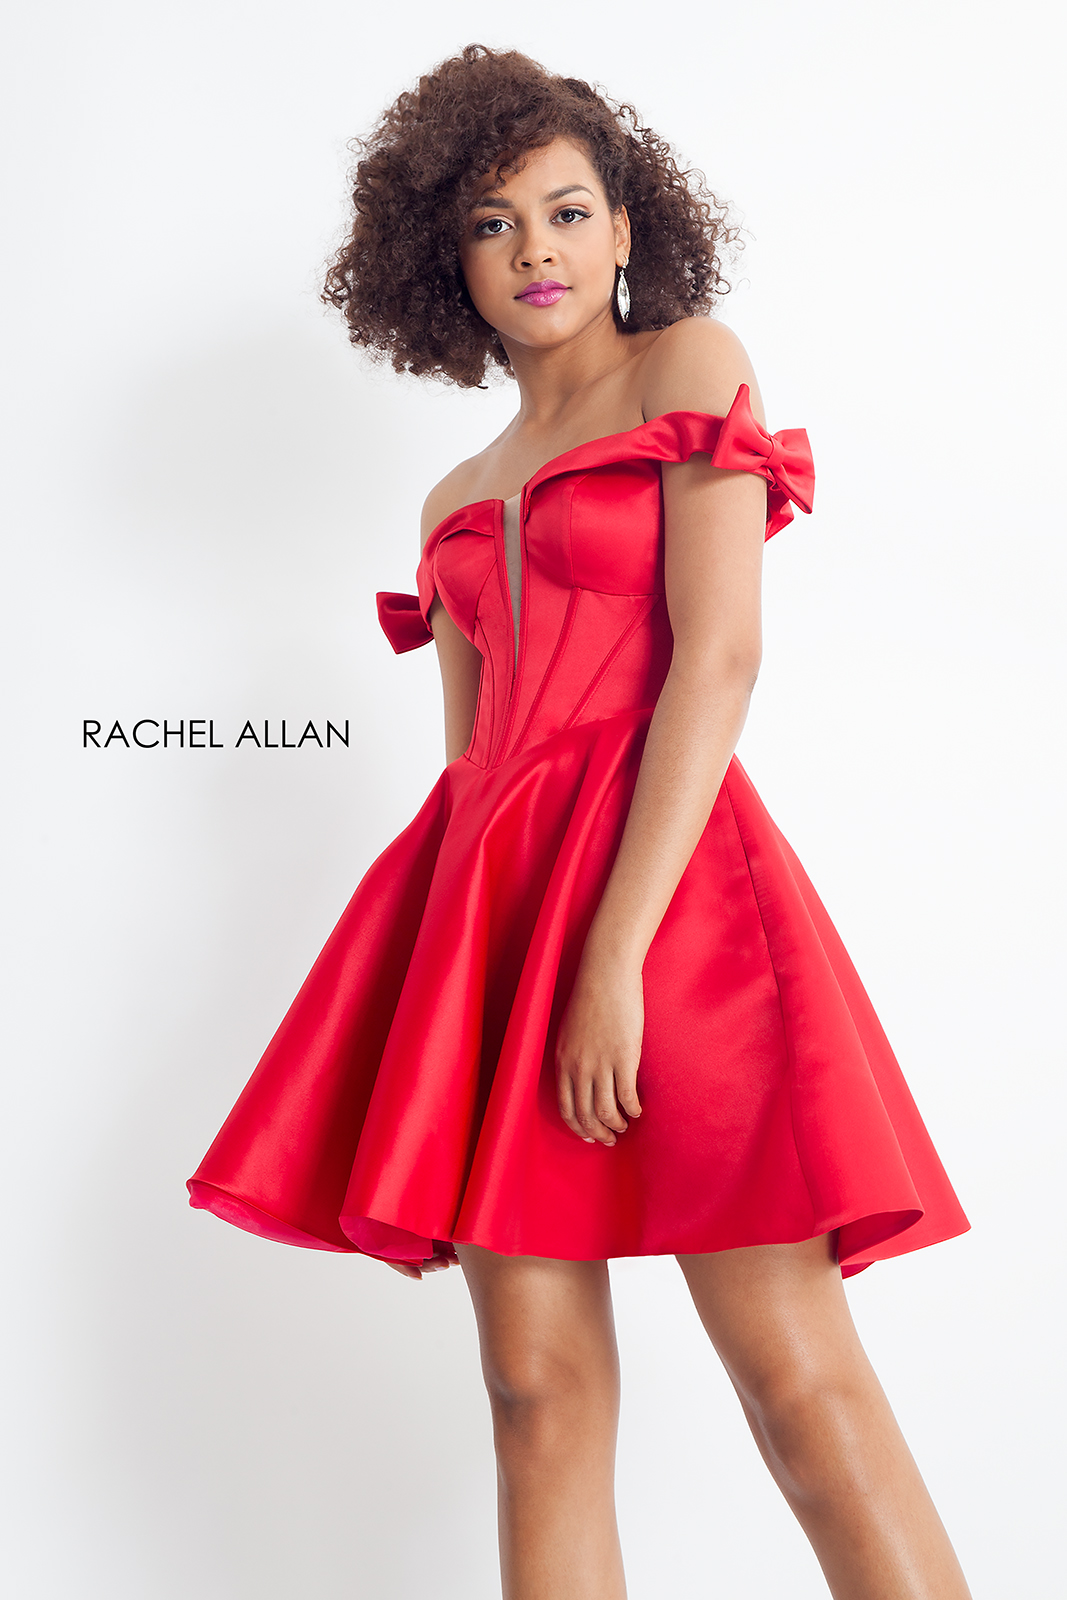 Off The Shoulder Fit & Flare Homecoming Dresses in Red Color